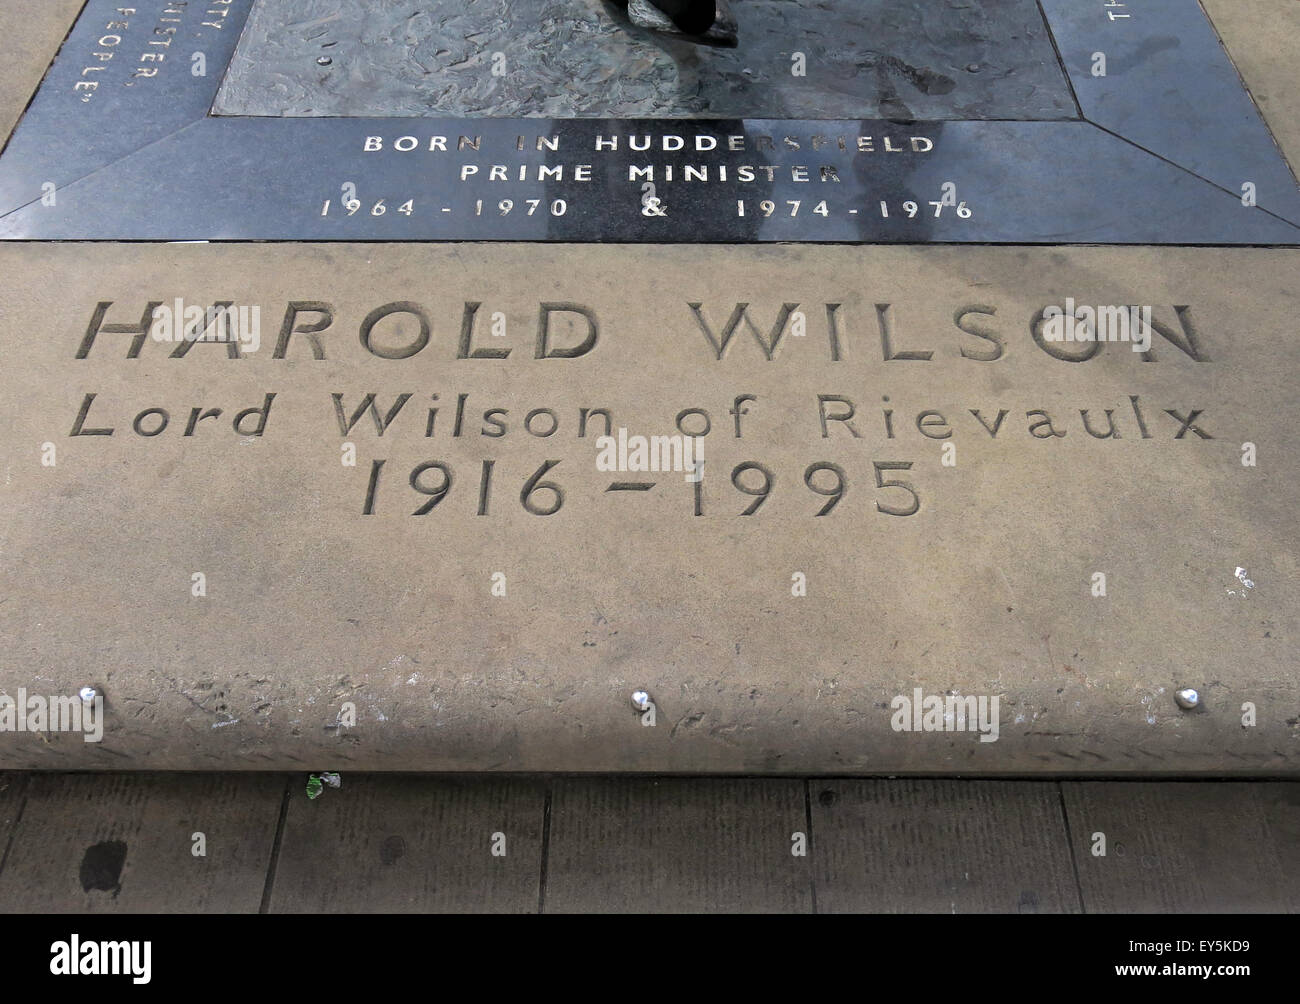 Lord Harold Wilson of Rievaulx 1916-1995 statue inscription, Huddersfield, West Yorks, England, UK - Stock Image